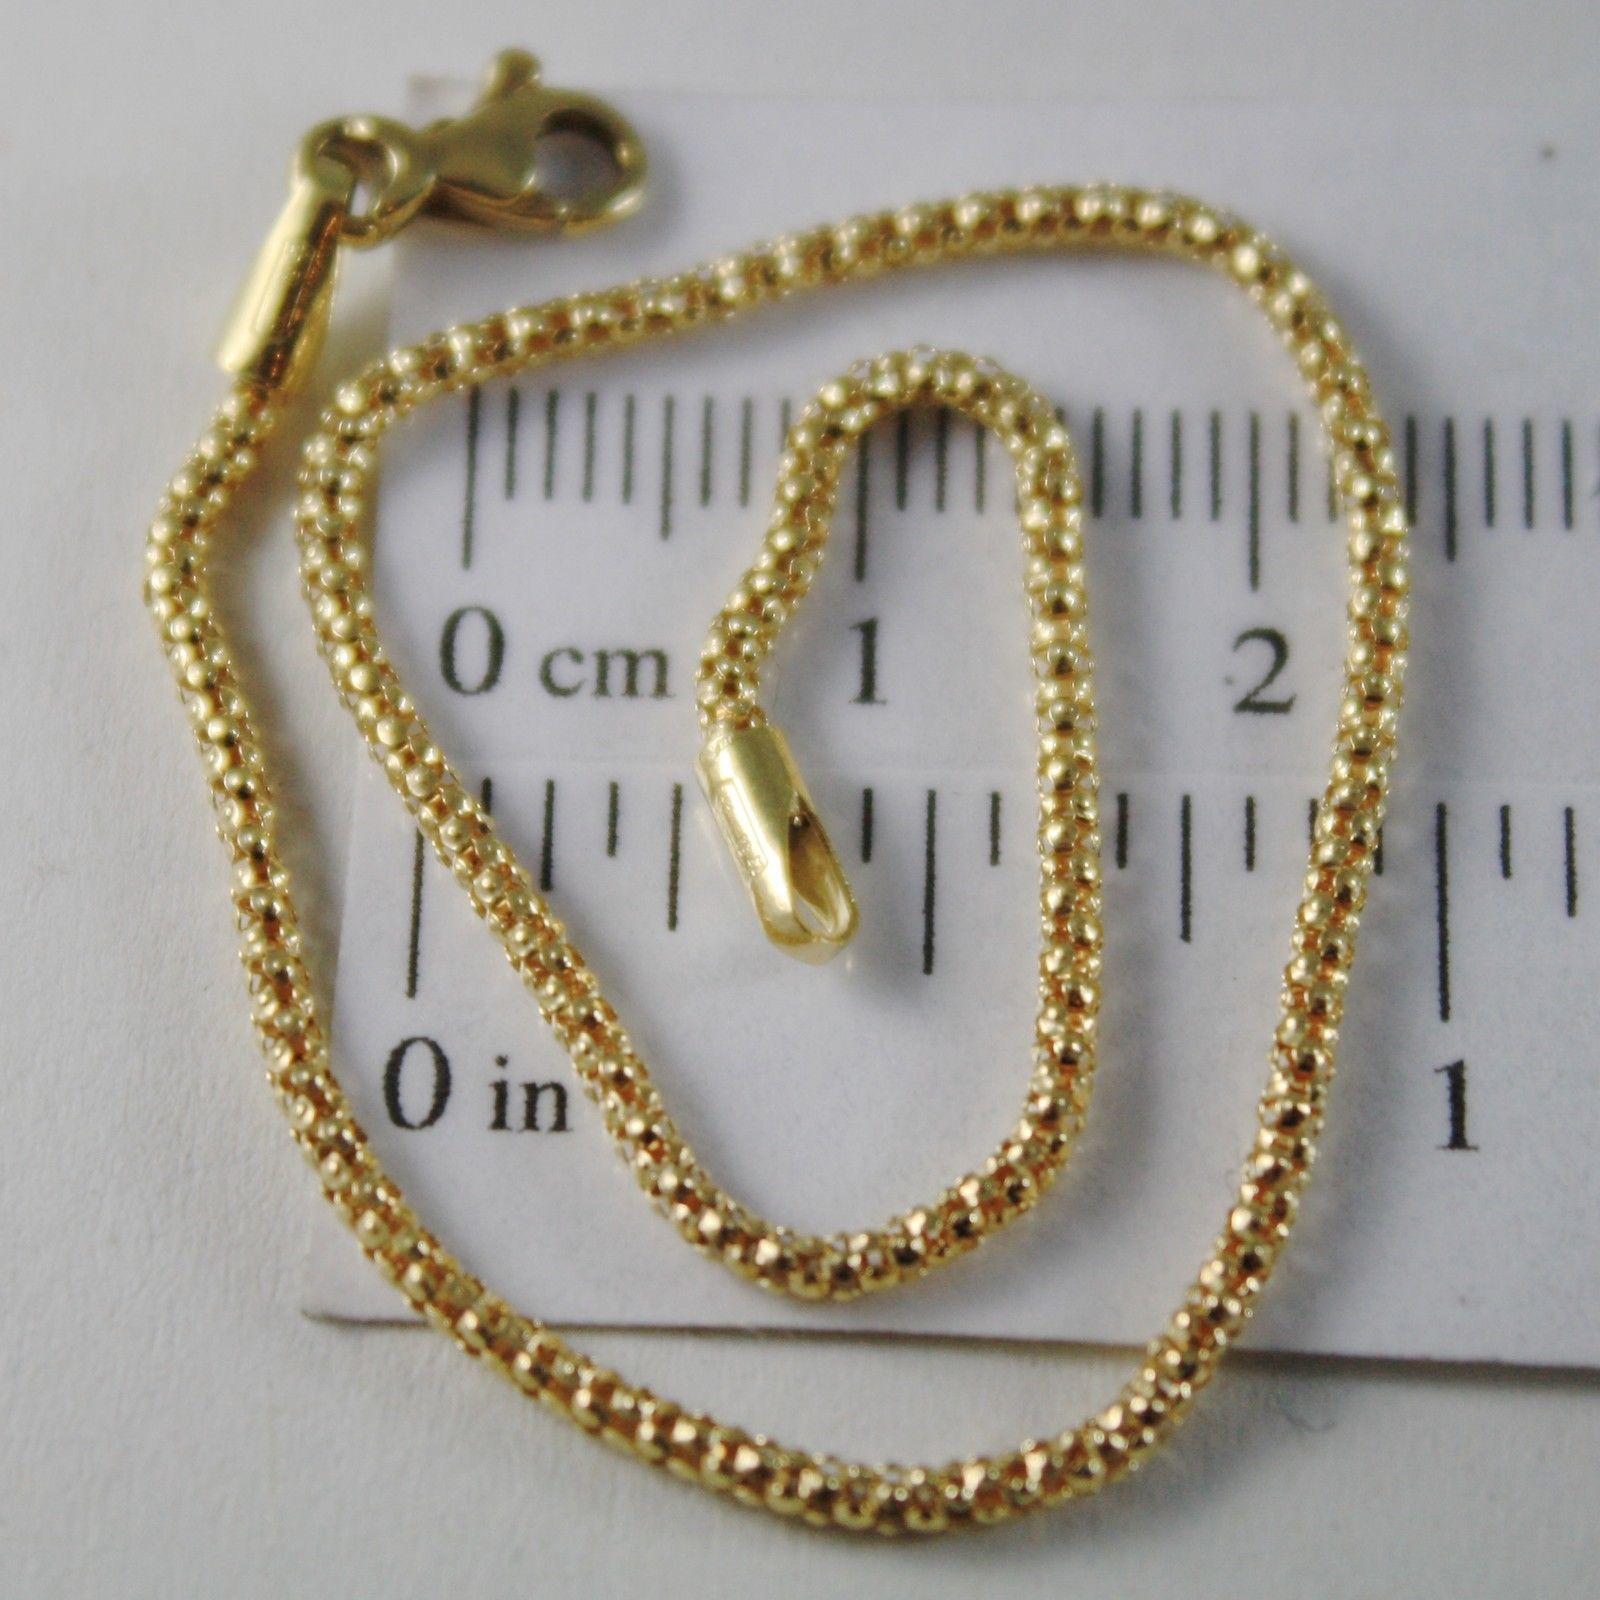 18K YELLOW GOLD BRACELET, BASKET ROUND MESH, 7.50 INCHES LONG, MADE IN ITALY